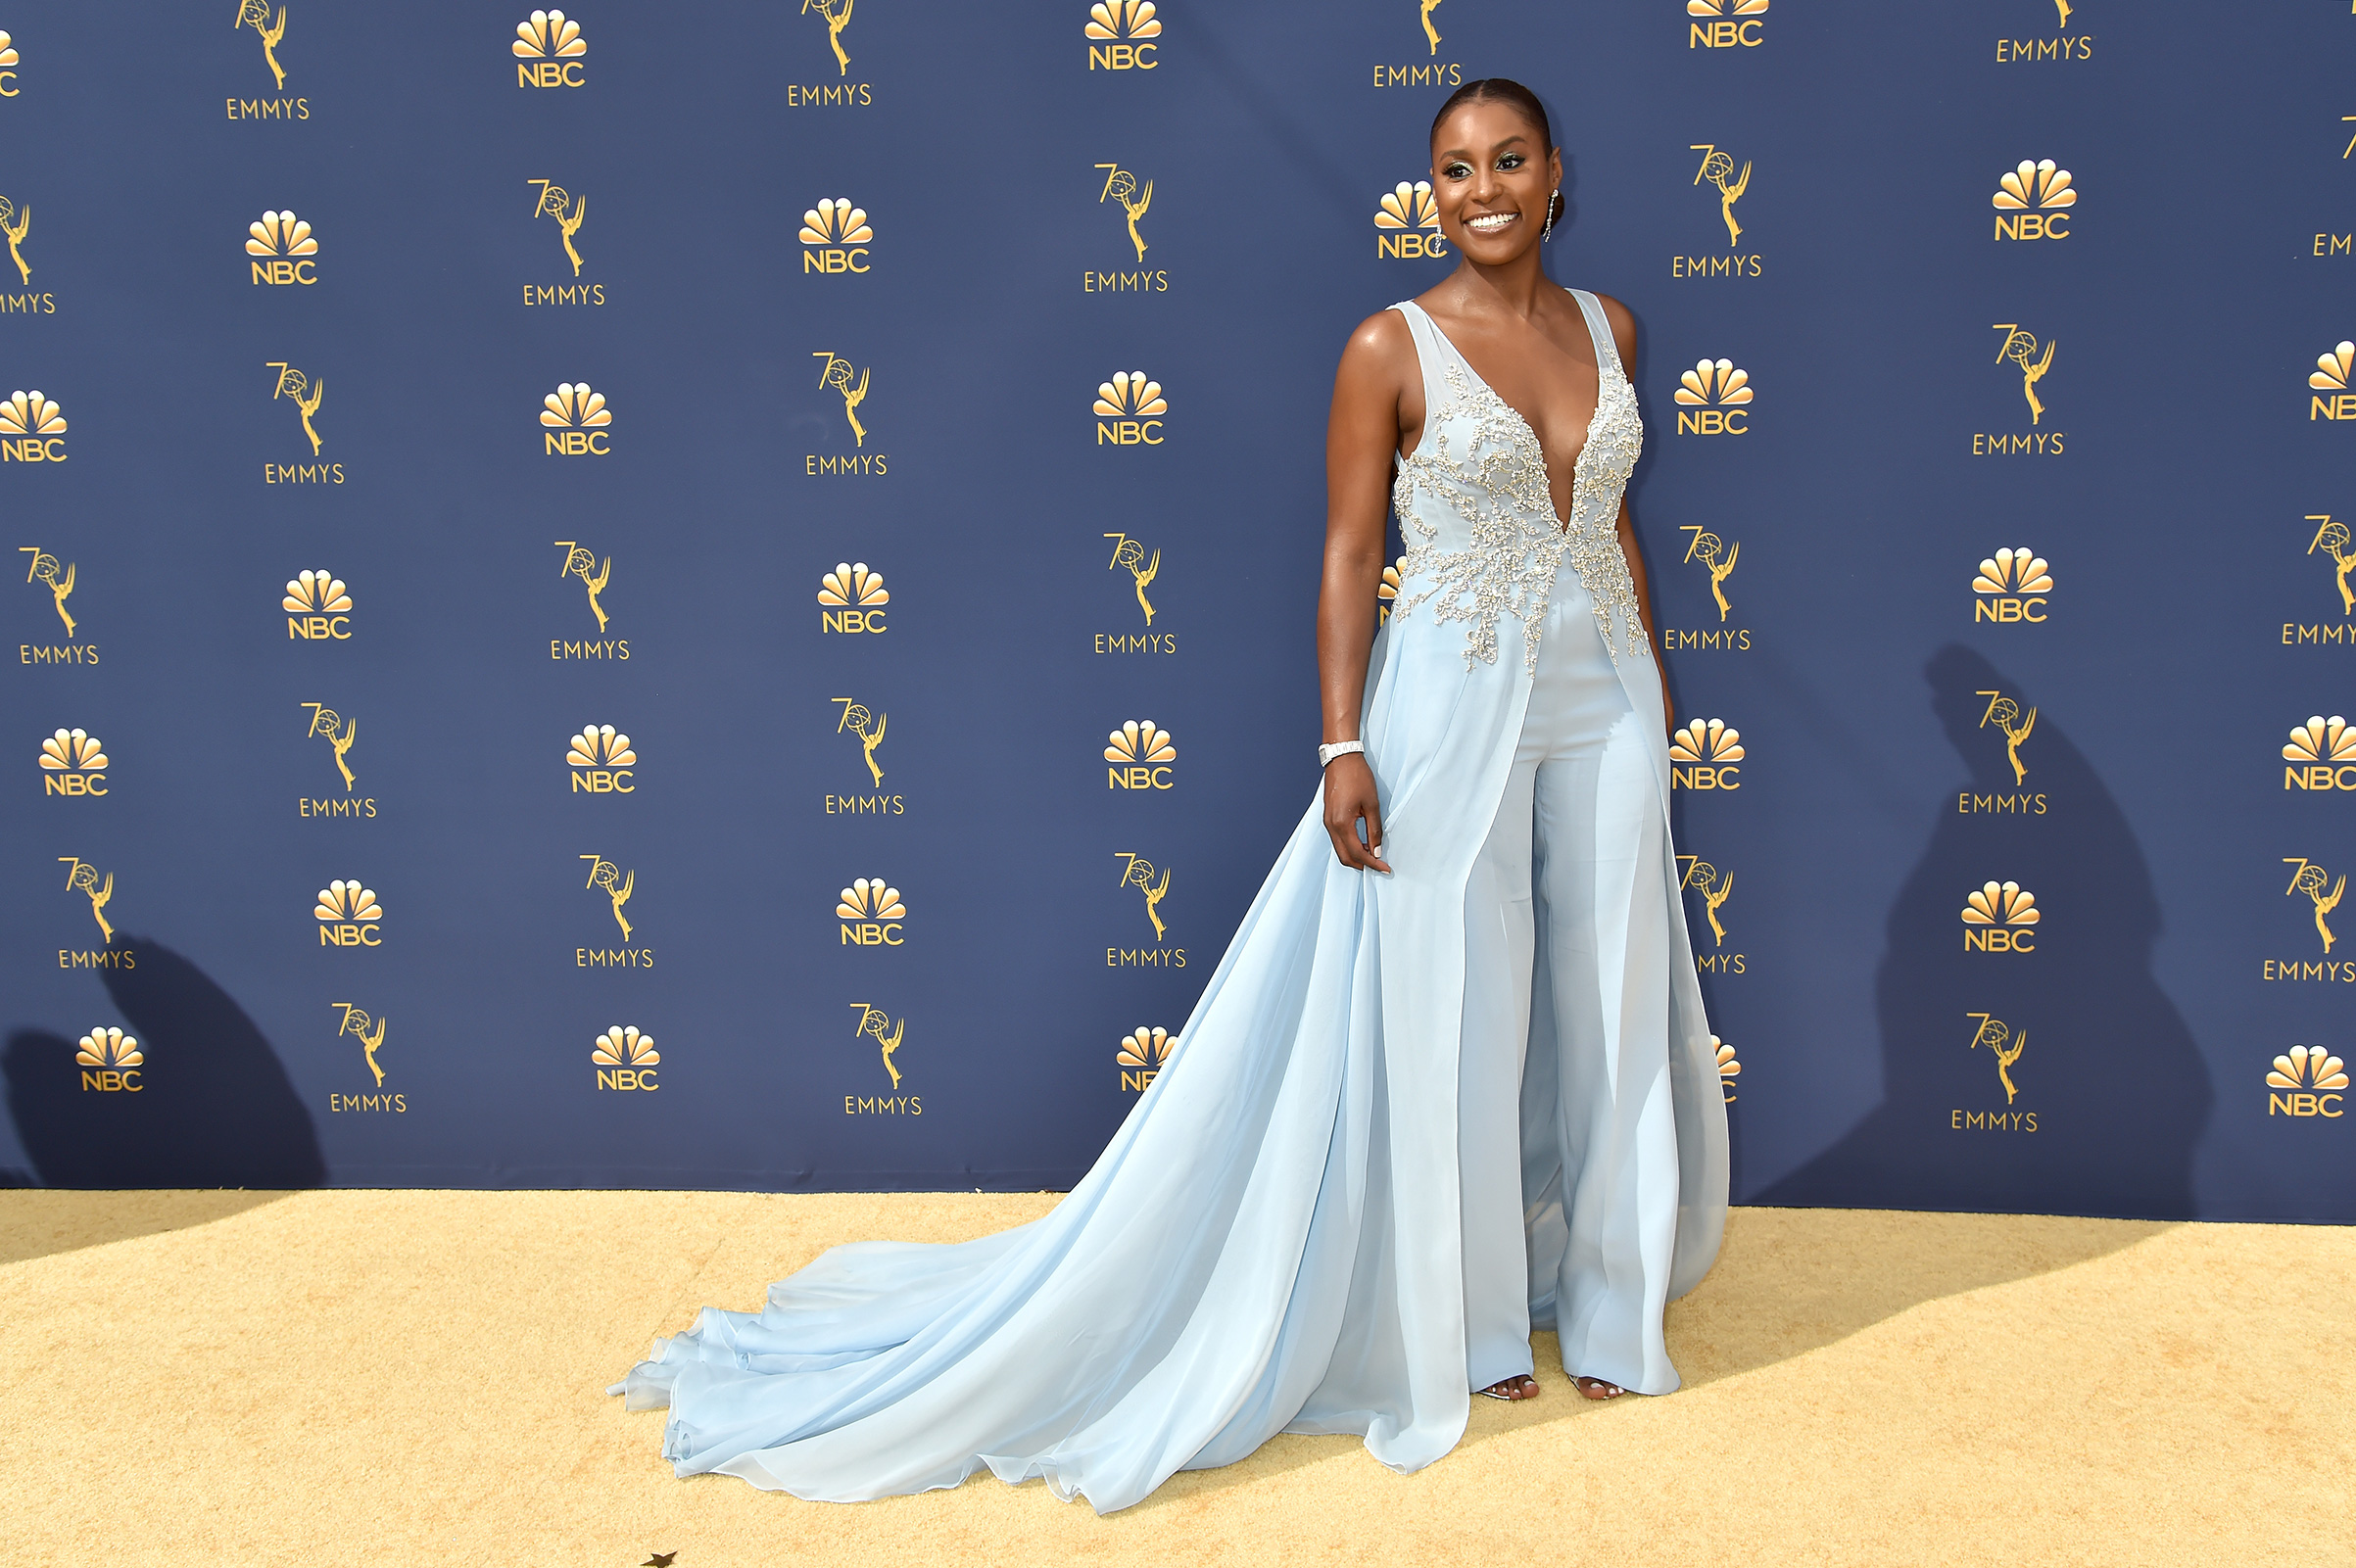 Issa Rae attends the 70th Emmy Awards on Sept. 17.